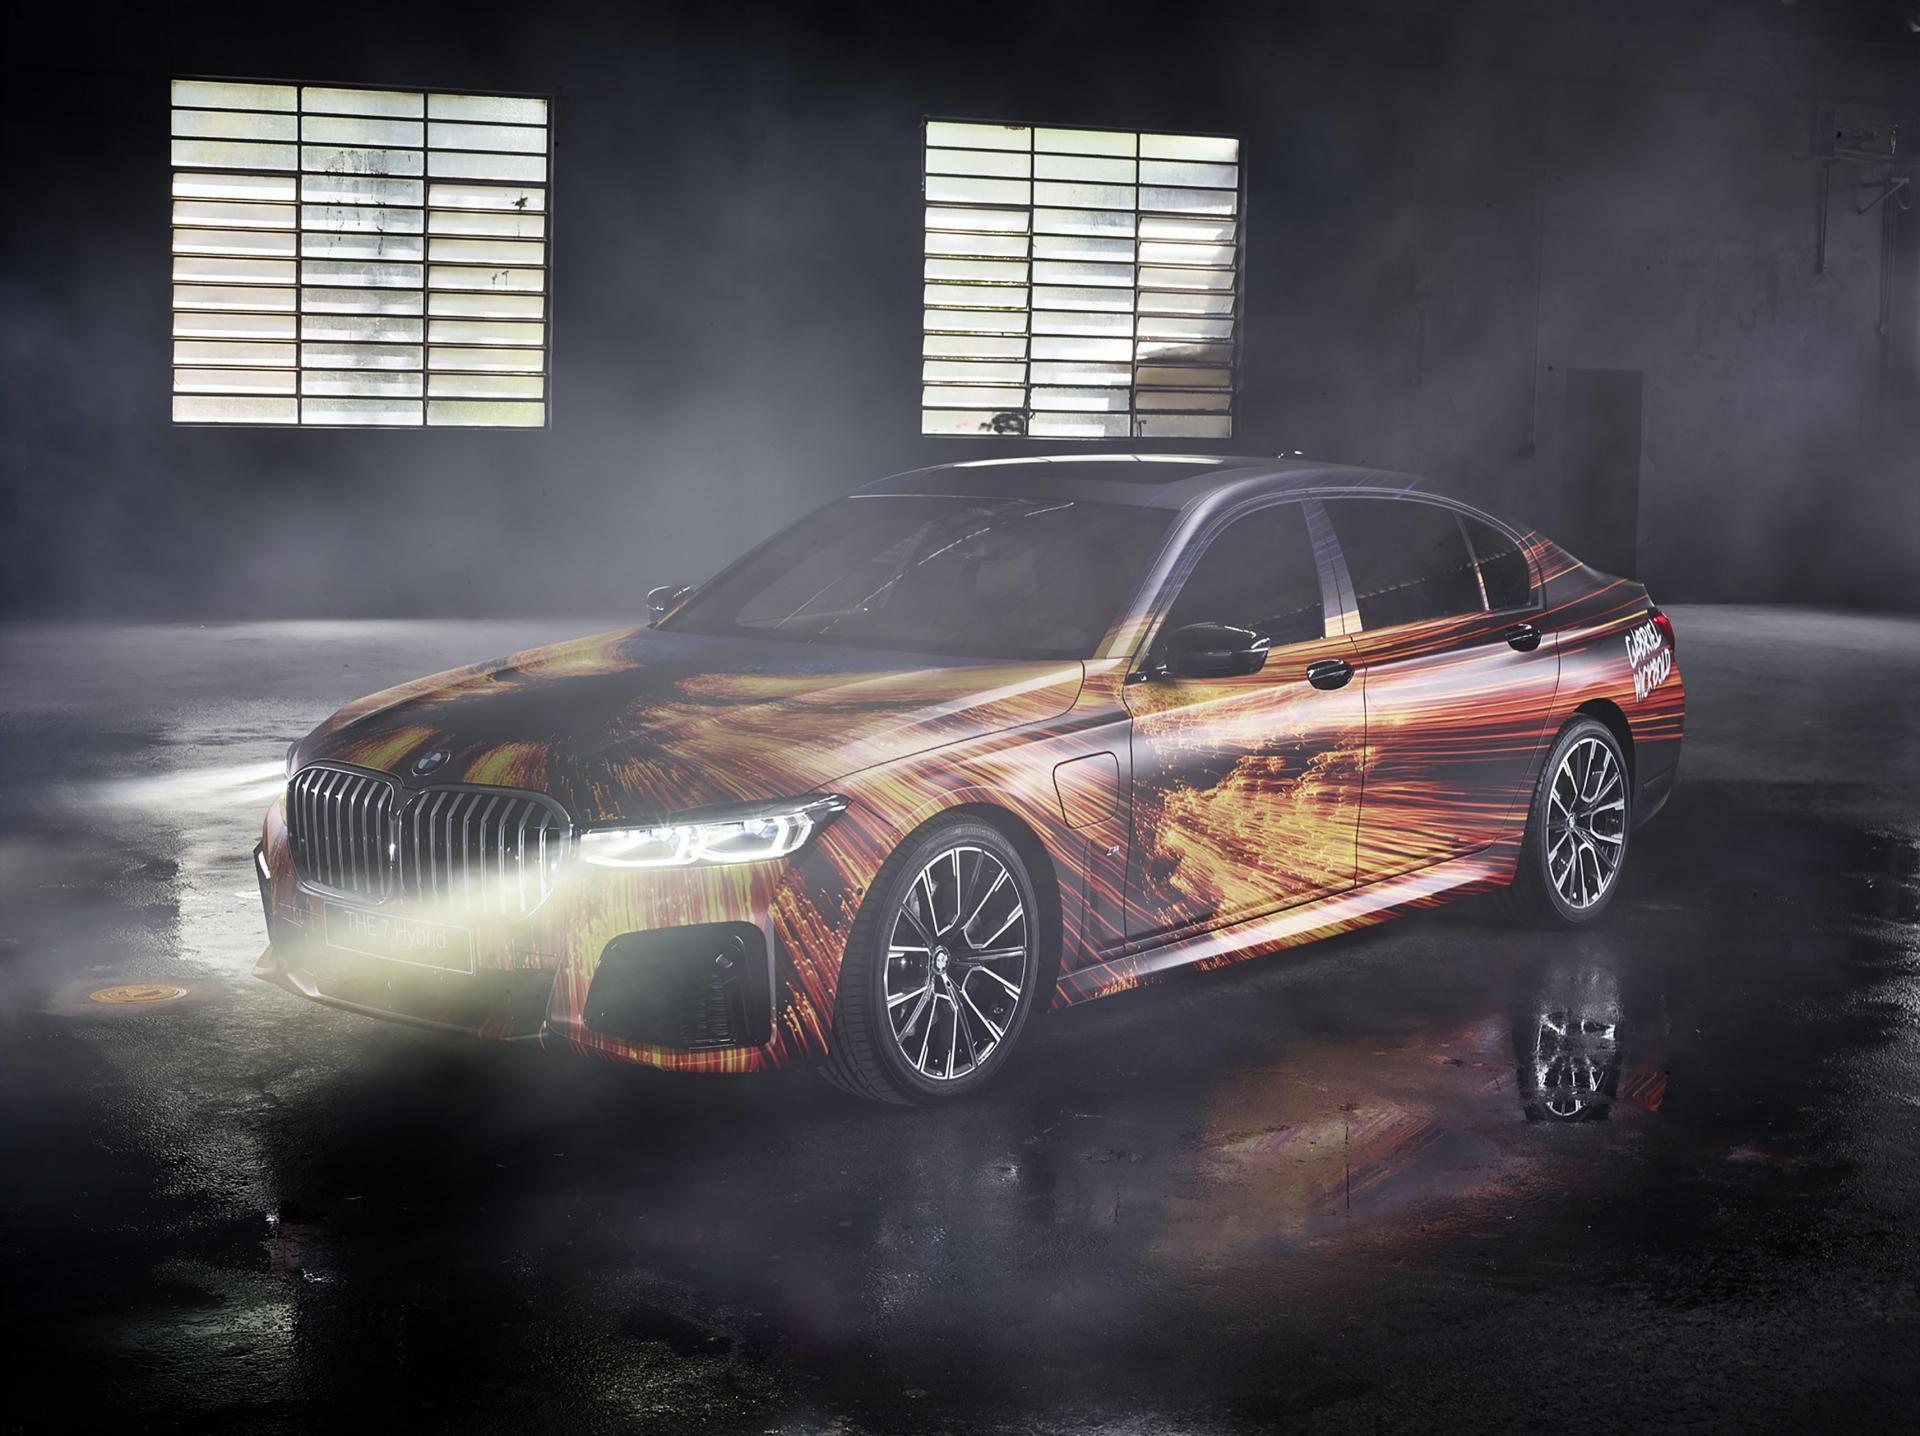 BMW-7-Series-745Le-M-Sport-Gabriel-Wickbold-Car-Art-14